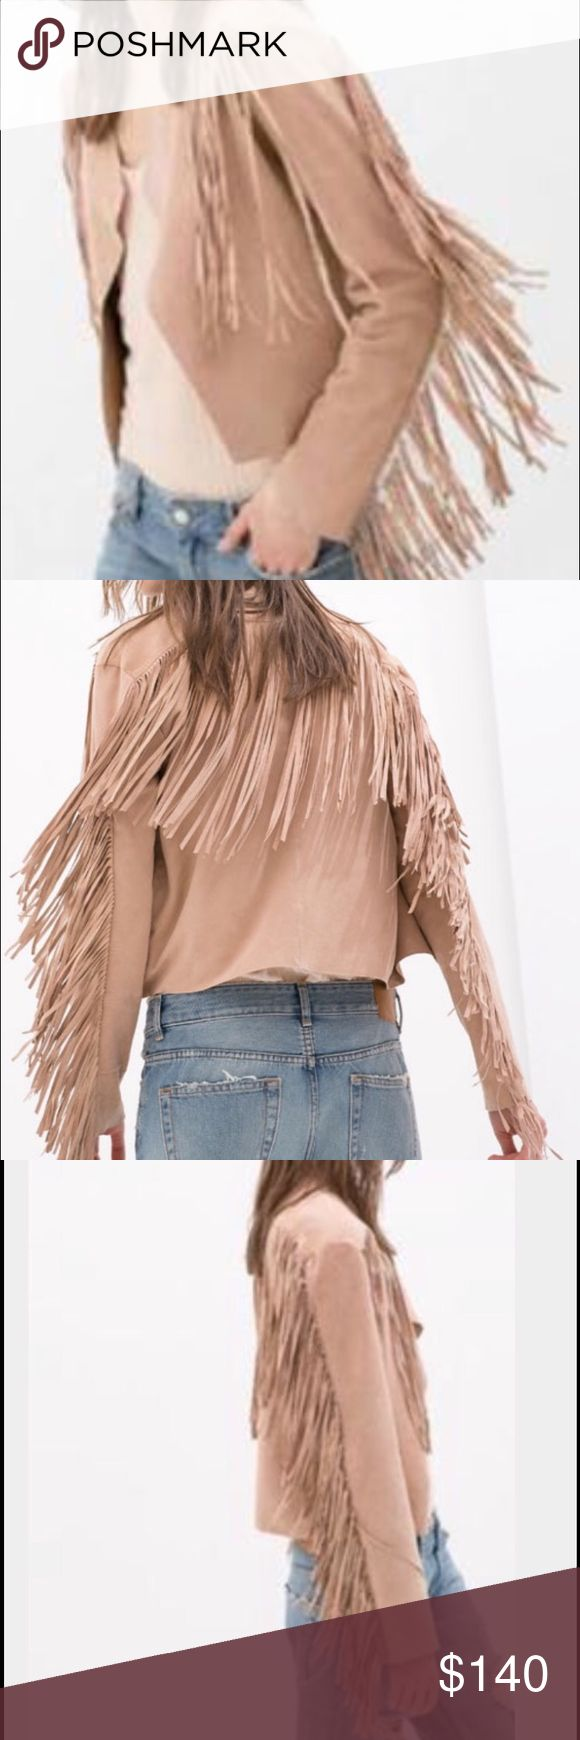 Zara Mauve Pink Fringe Leather Jacket Size small. In excellent condition. Only worn twice. Zara Jackets & Coats Blazers